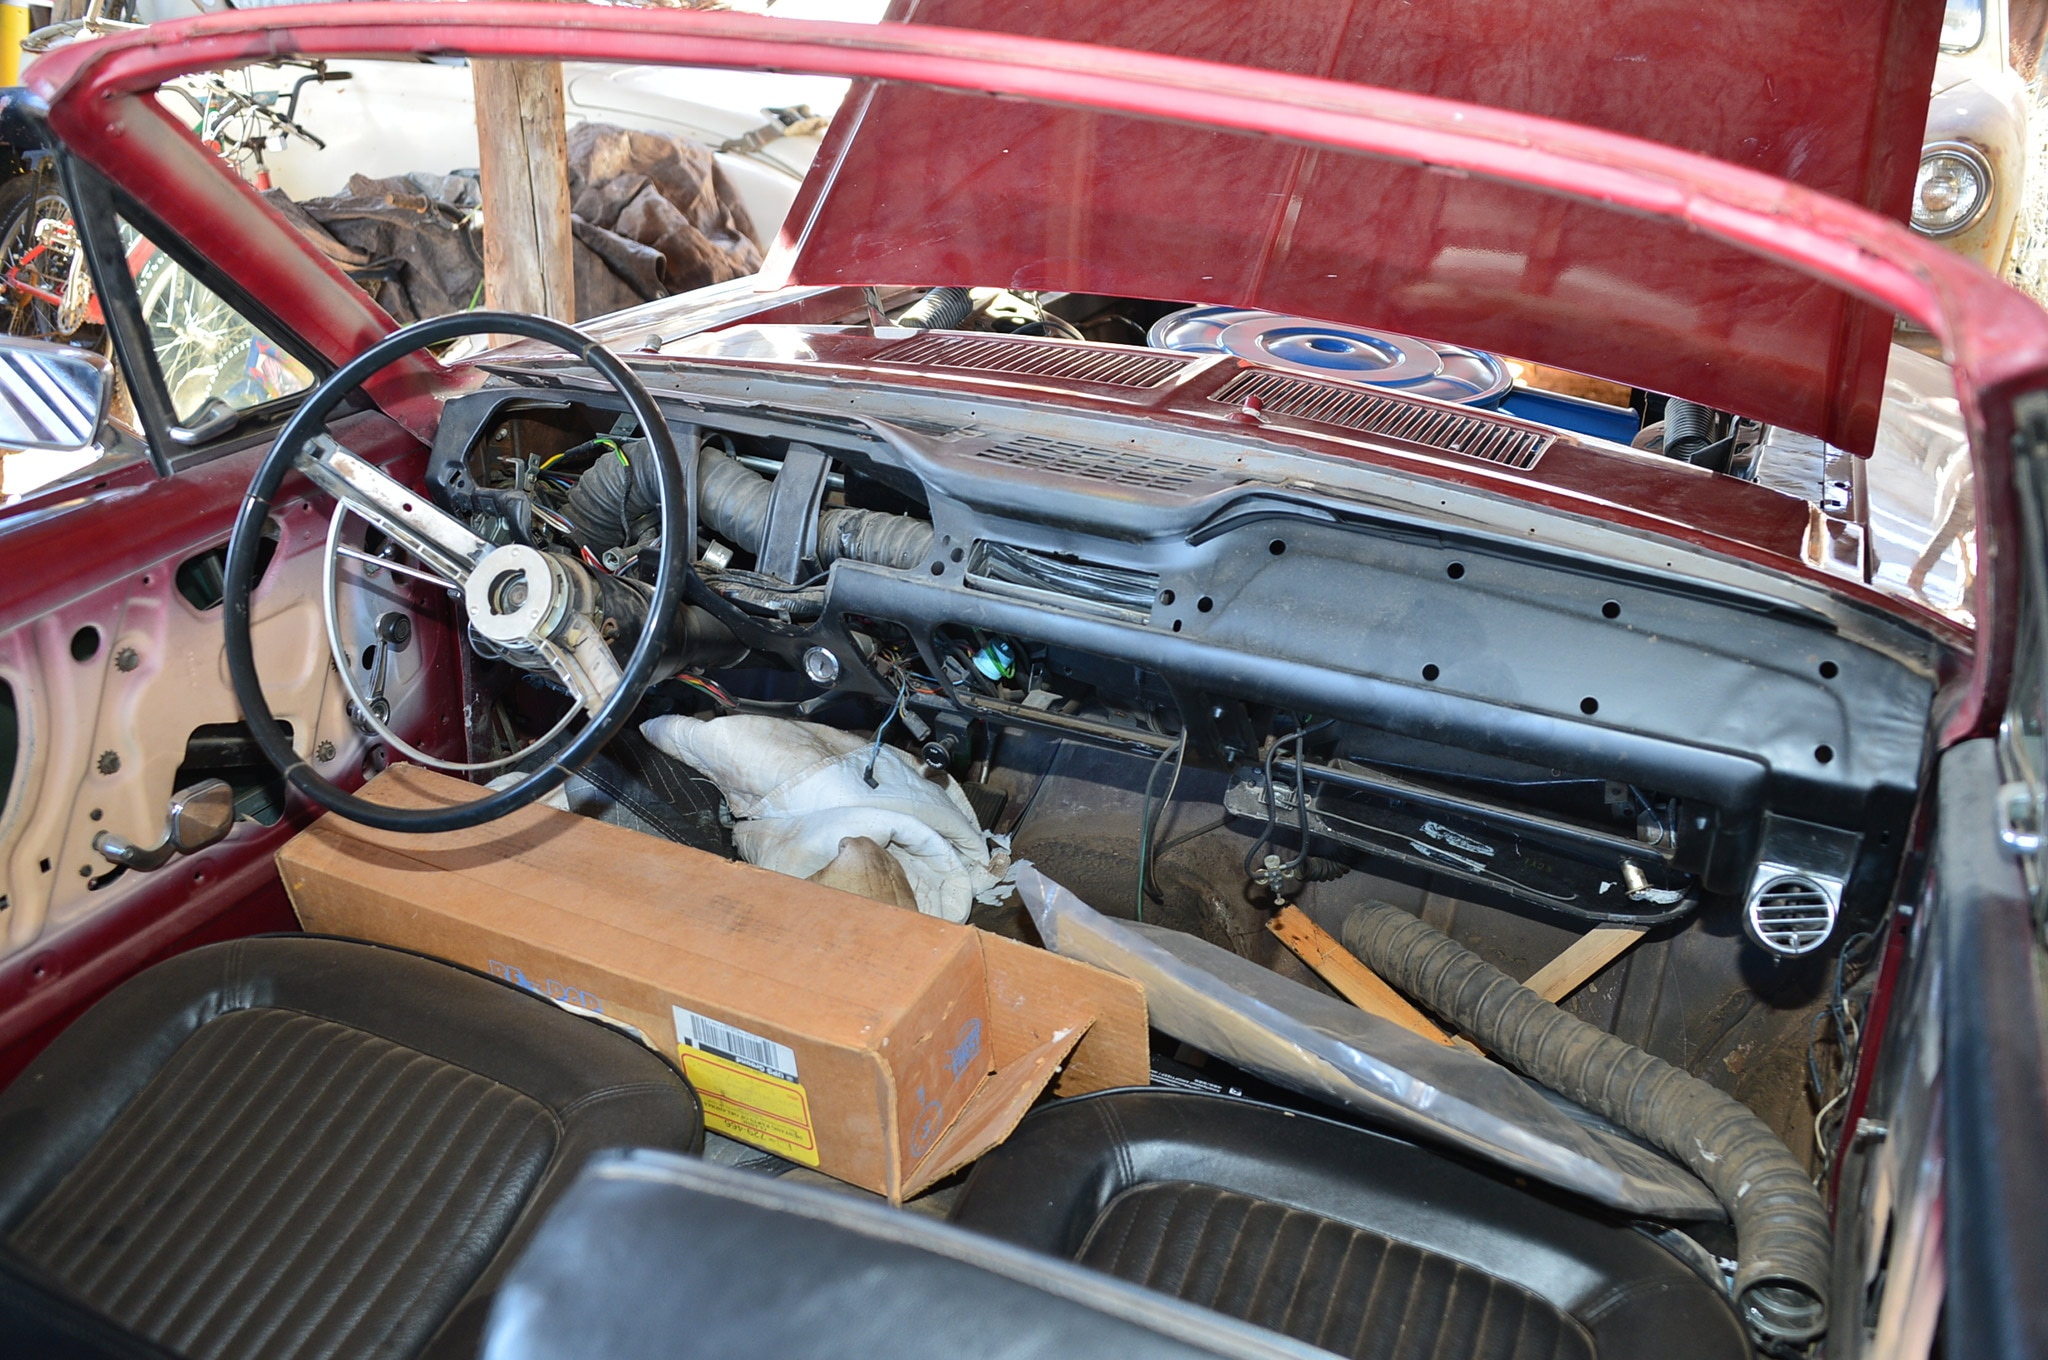 1968 Ford Mustang Convertible Project Interior Before